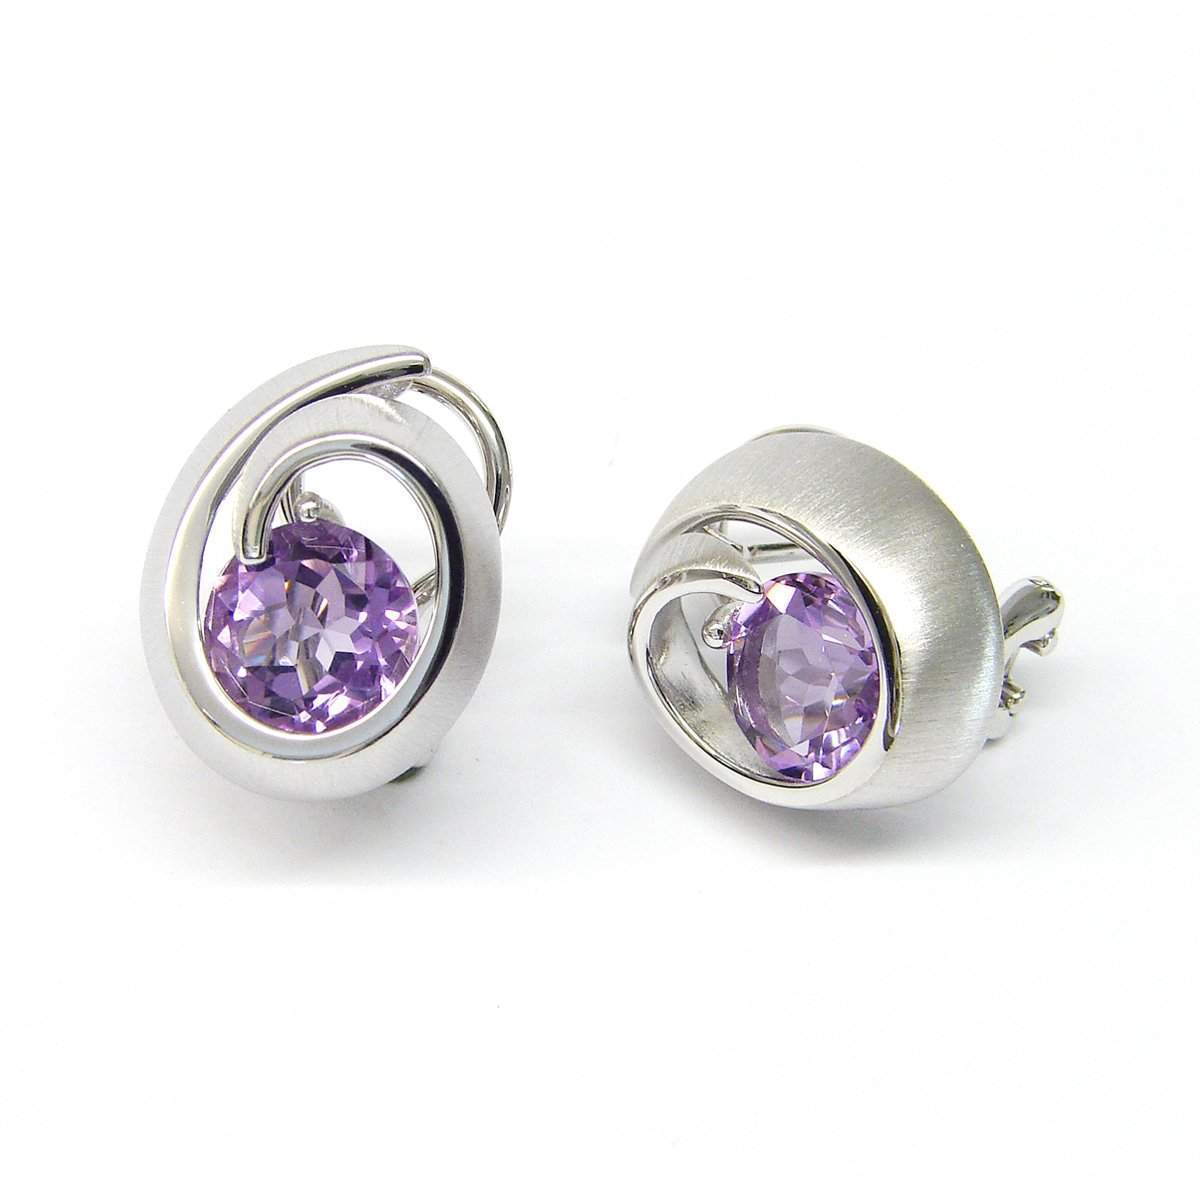 Sterling Silver Amethyst Earrings - 02/84835-AM-Breuning-Renee Taylor Gallery